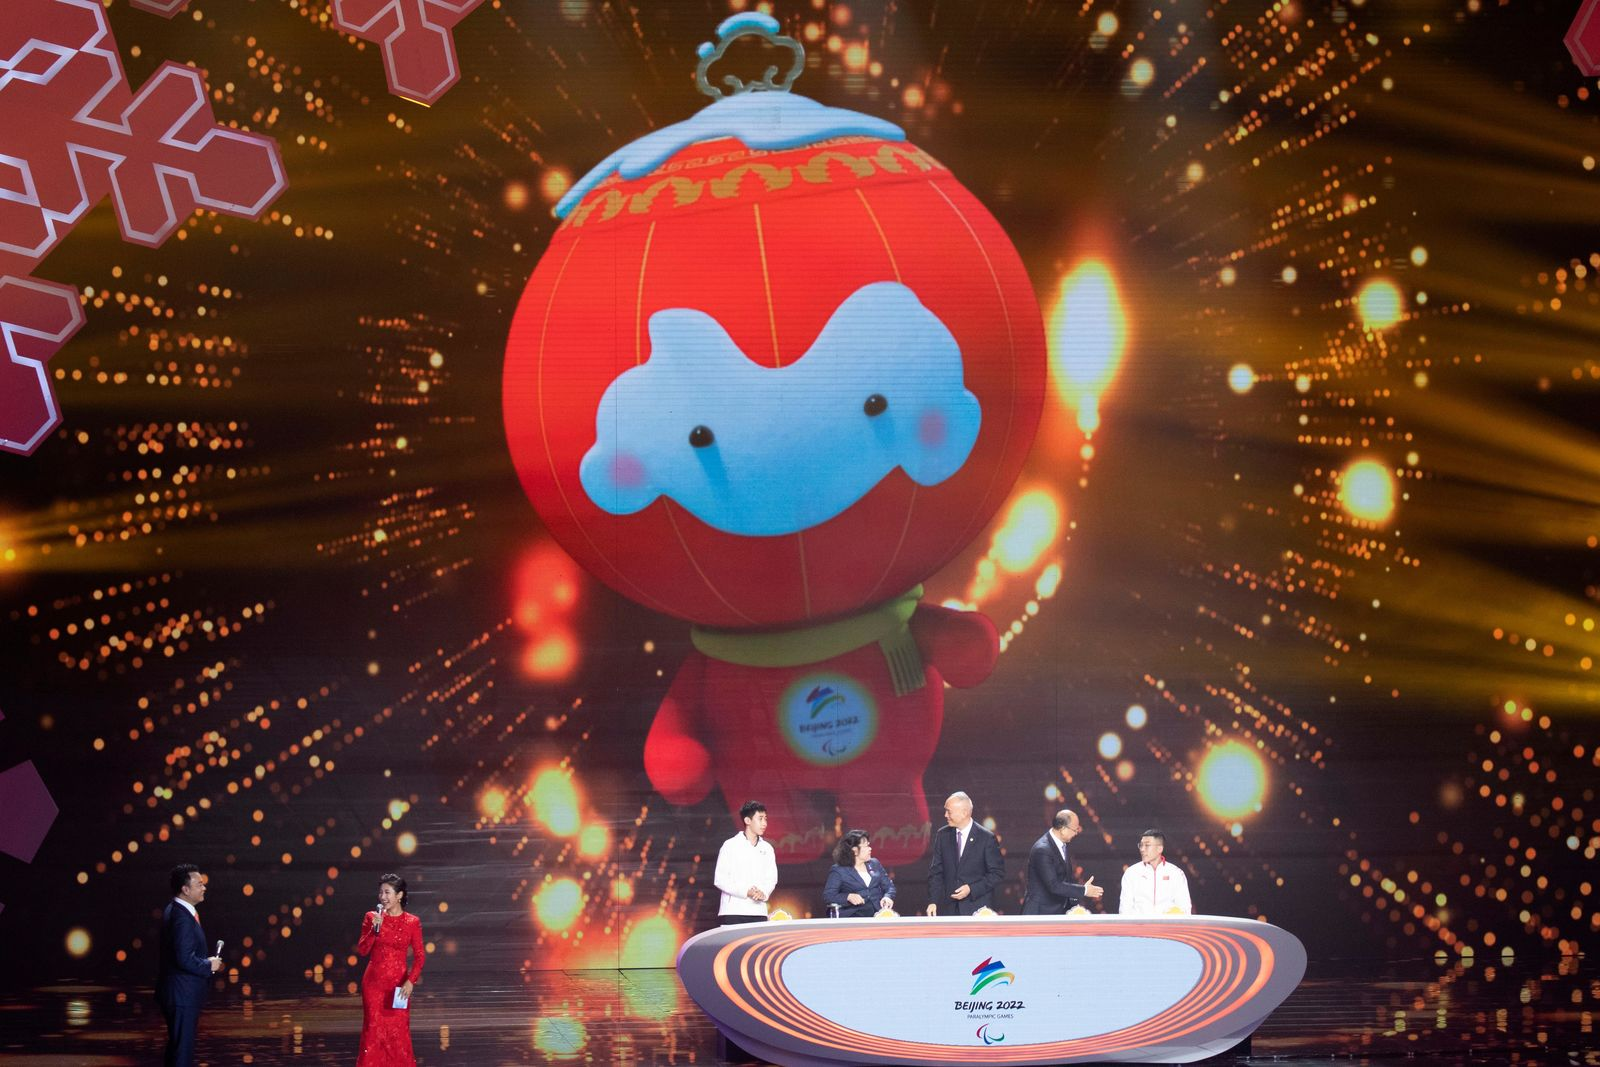 2022 Winter Paralympic Games mascot Shuey Rong Rong is revealed during a ceremony held at the Shougang Ice Hockey Arena in Beijing on Tuesday, Sept. 17, 2019. (AP Photo/Ng Han Guan)